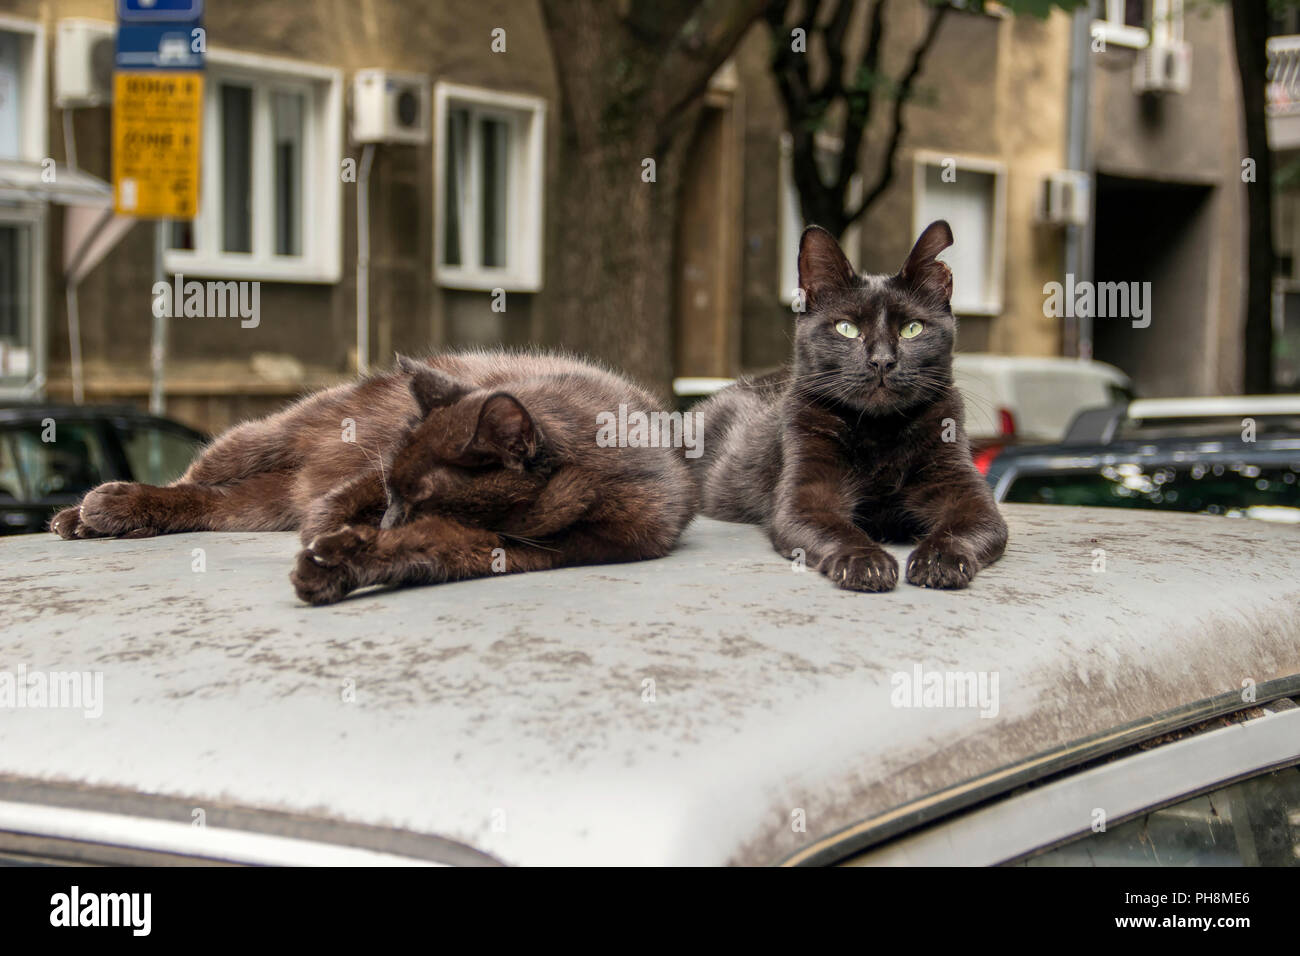 Belgrade, Serbia, August 2018 - Two stray cats resting on the roof of a parked car in the city center in Majke Jevrosime street - Stock Image